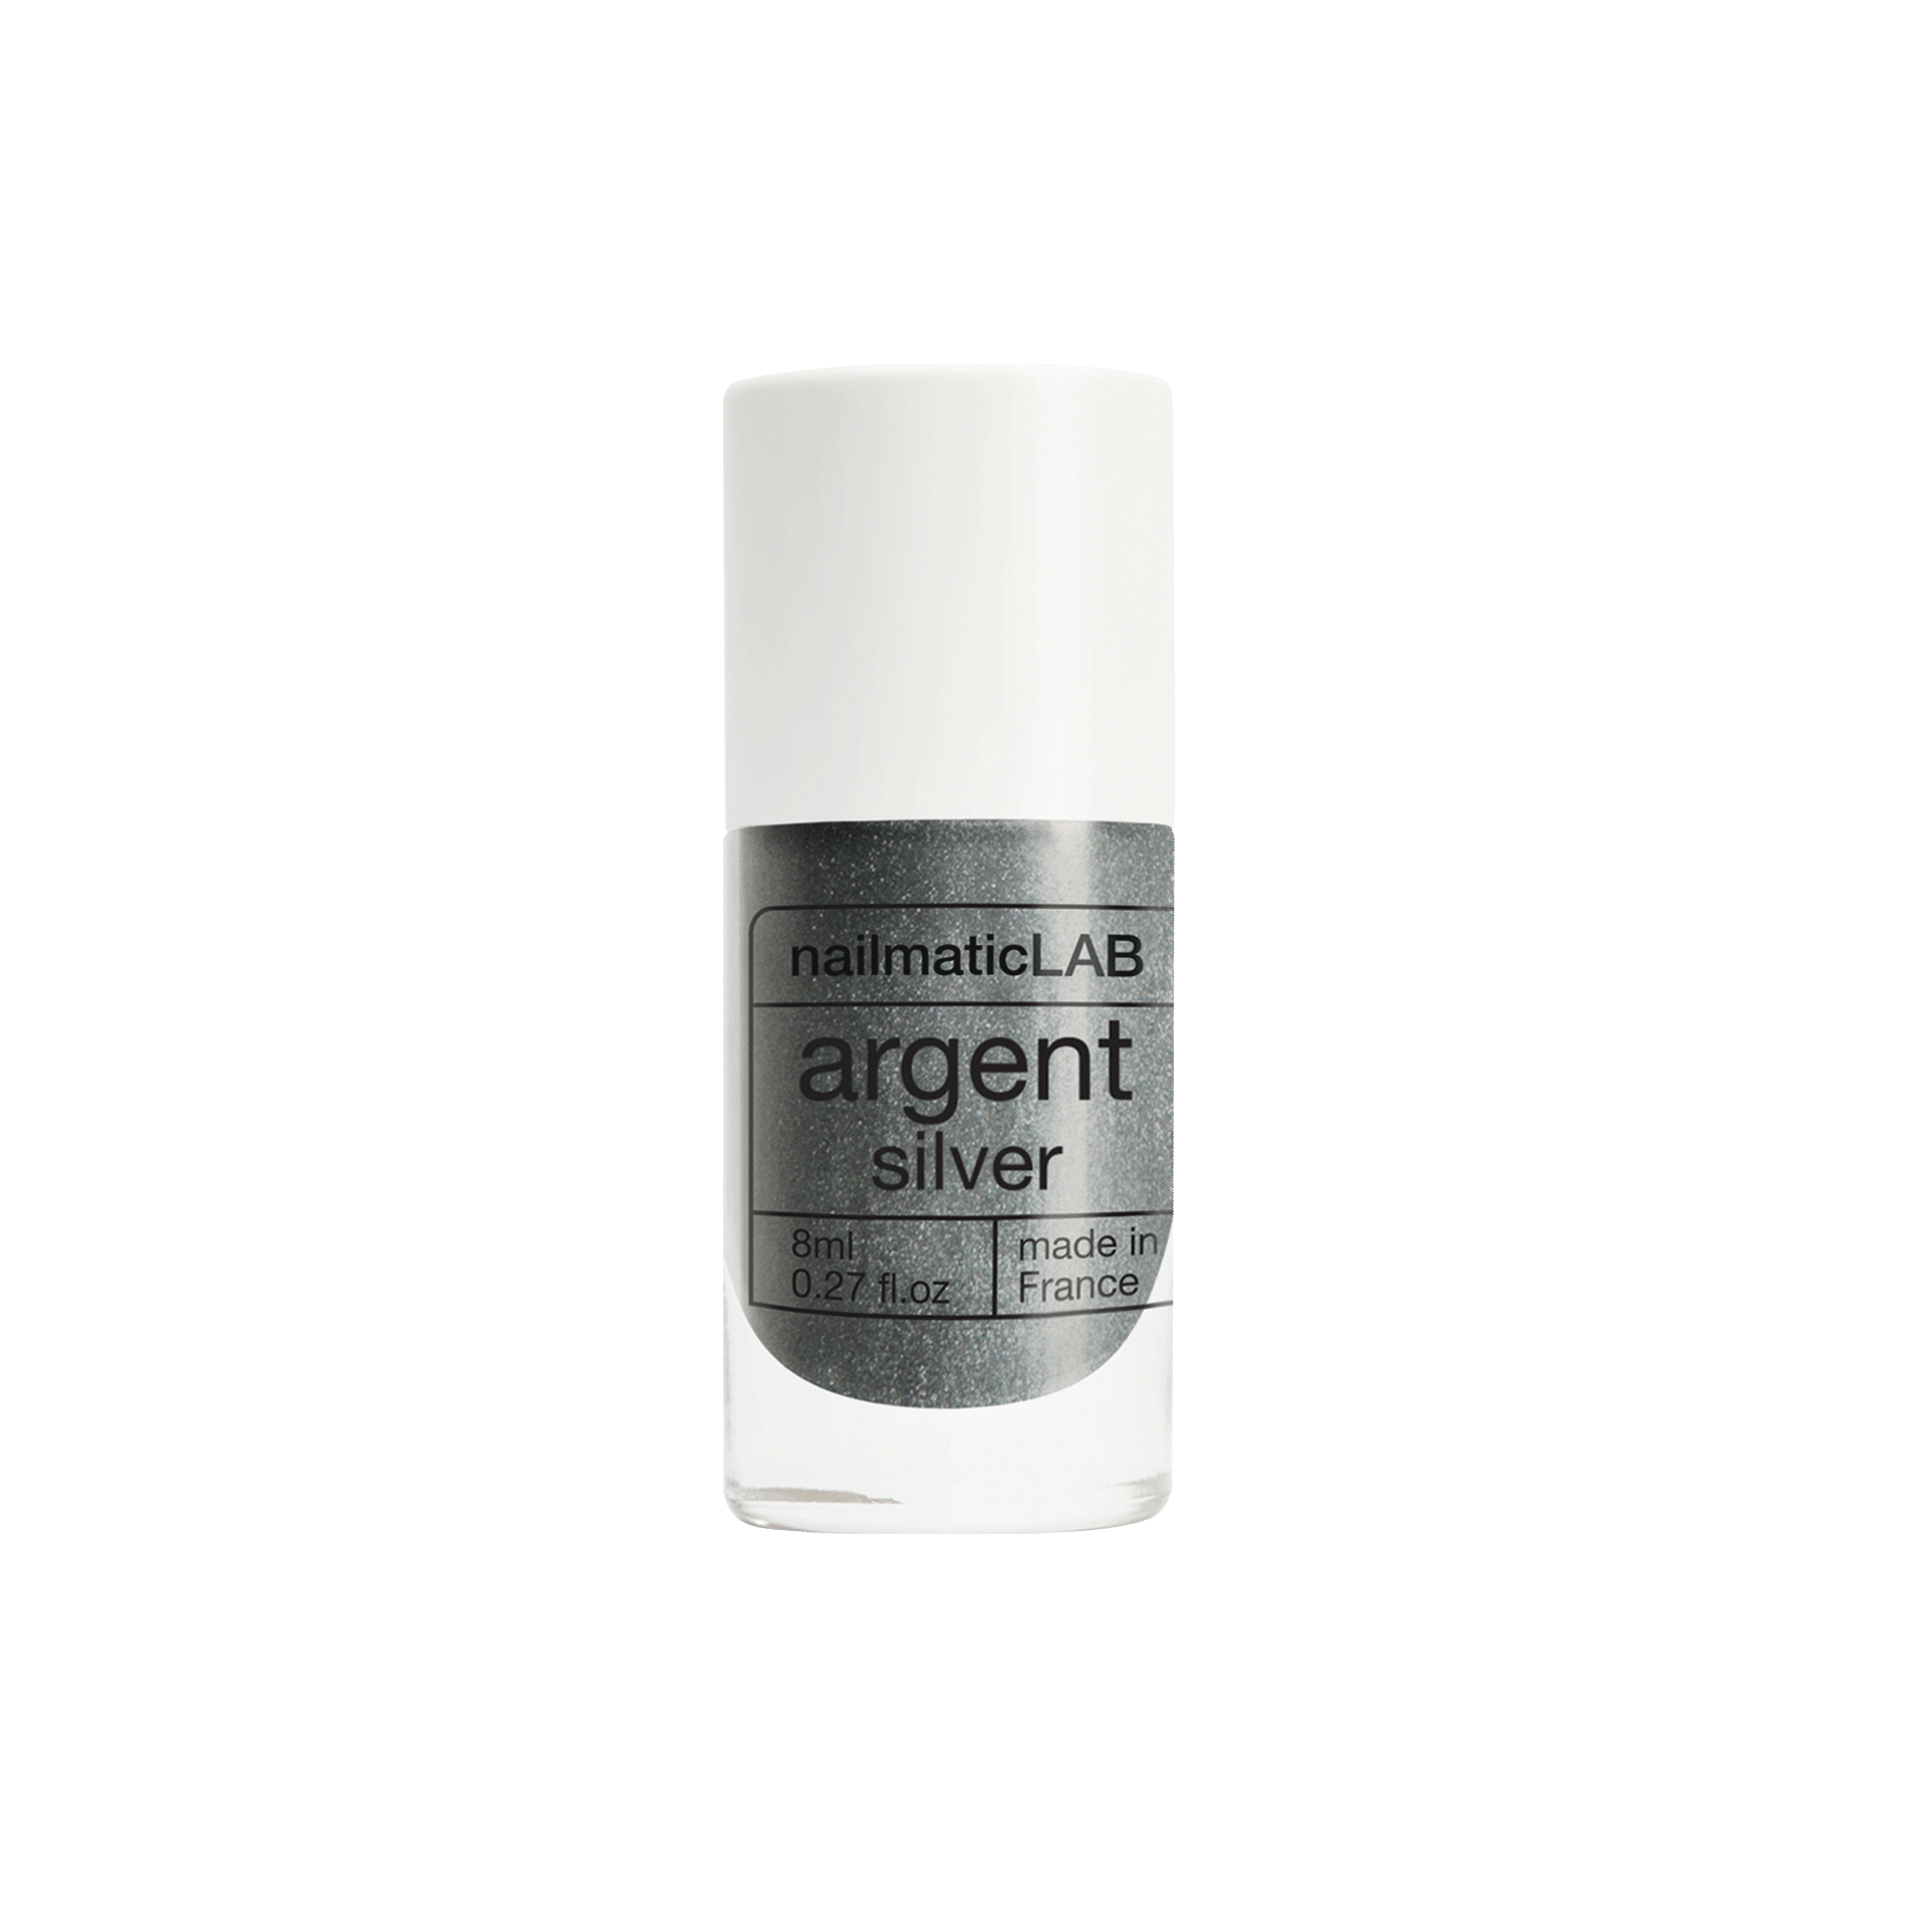 nailmatic loves omy france giant colouring poster gift. Black Bedroom Furniture Sets. Home Design Ideas